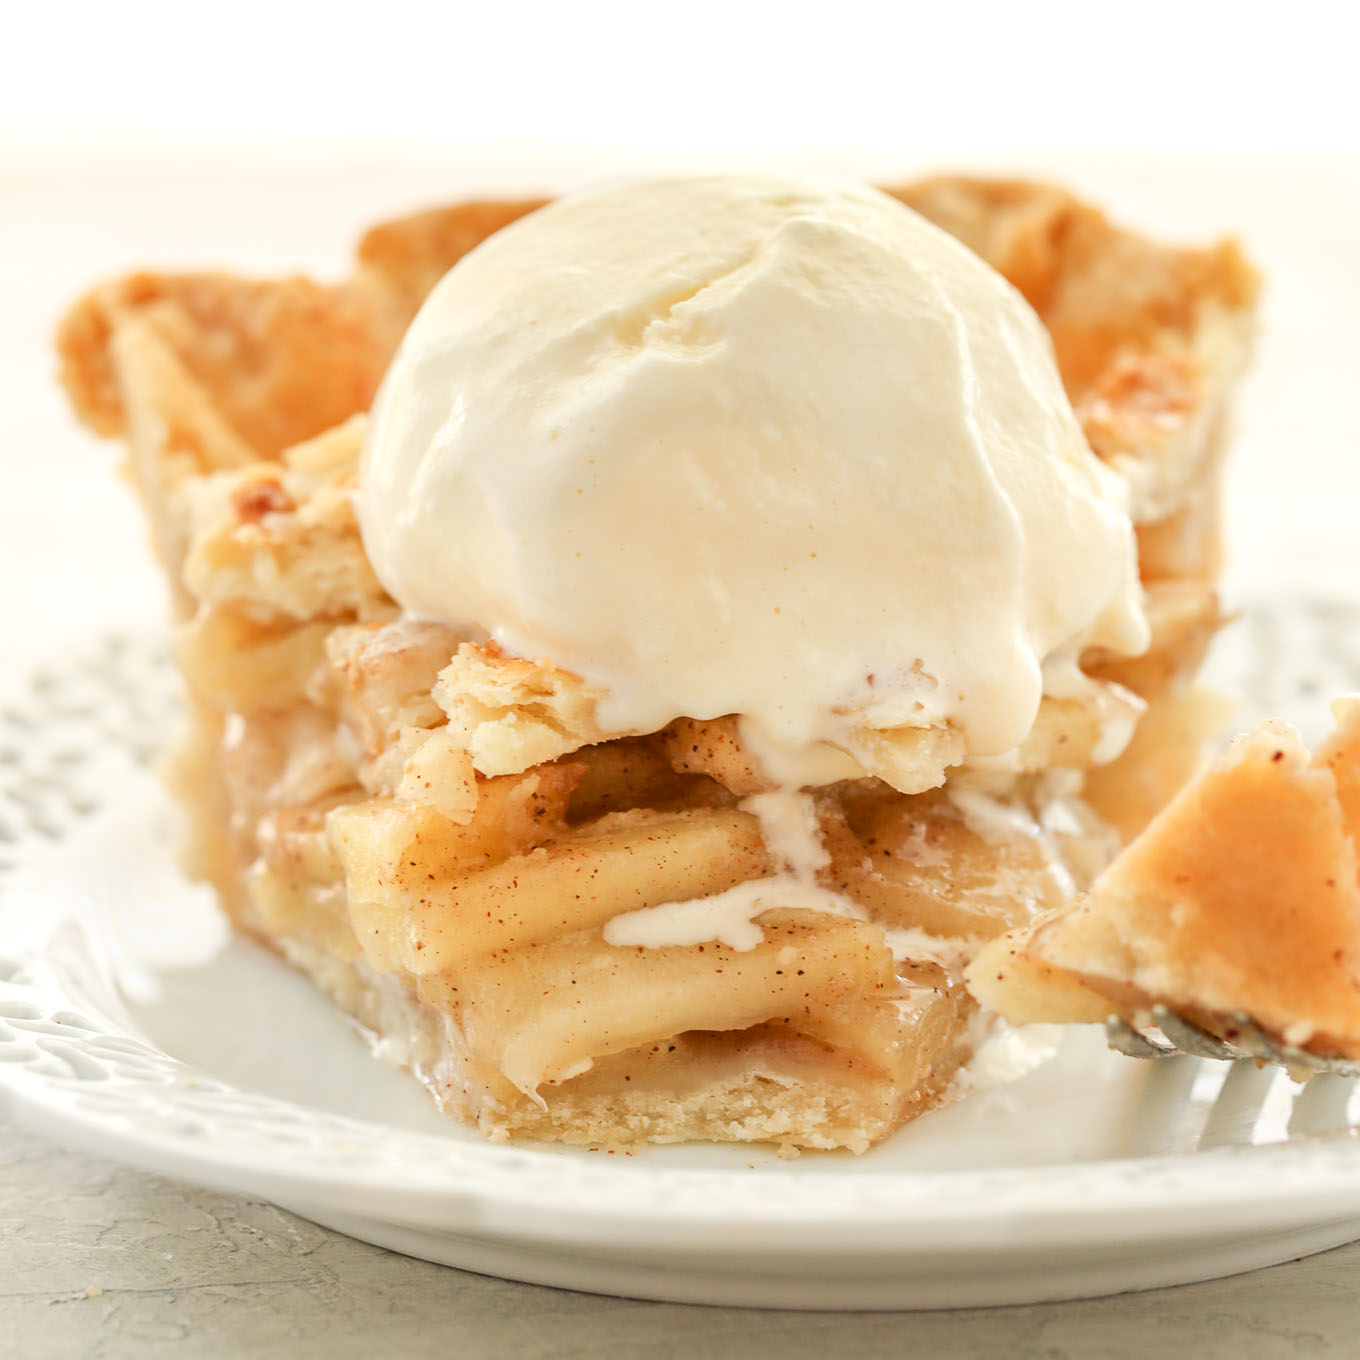 8 Mistakes That Make Your Apple Pie A Mushy, Soggy Mess